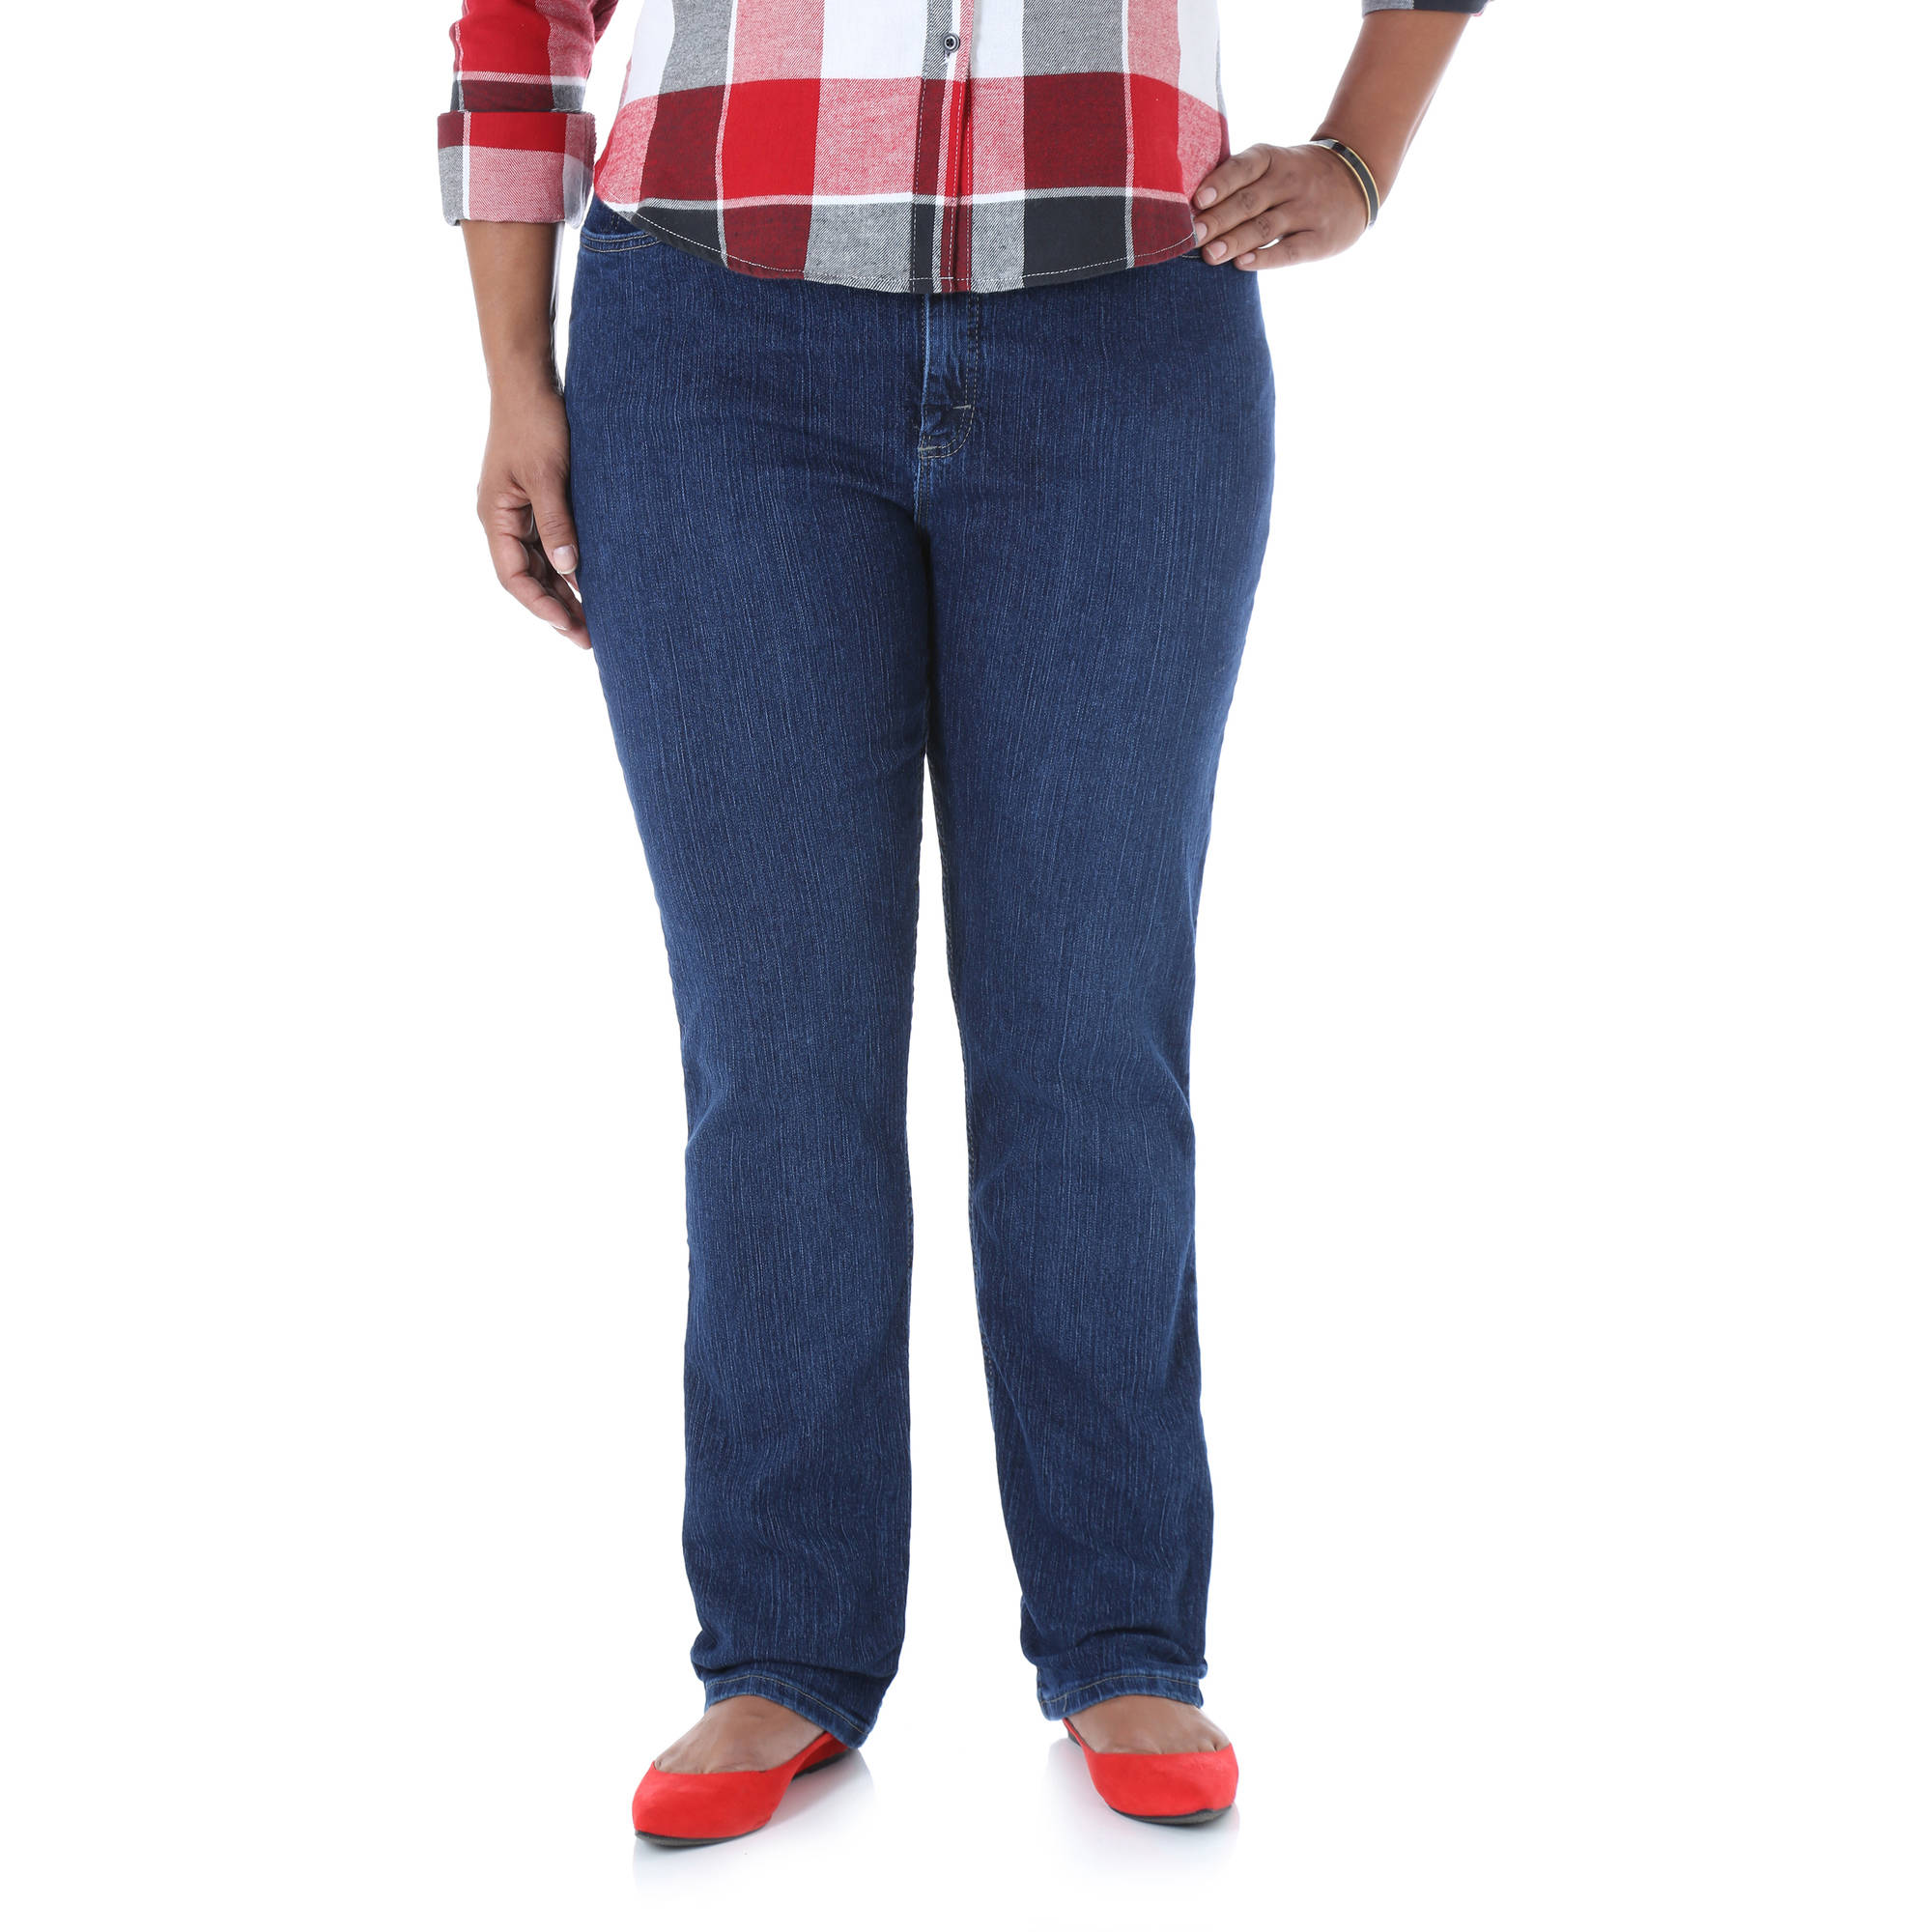 plus com petite comfort fit jeans walmart waist and simply medium lengths size s riders lee long in ip leg straight available by comforter women